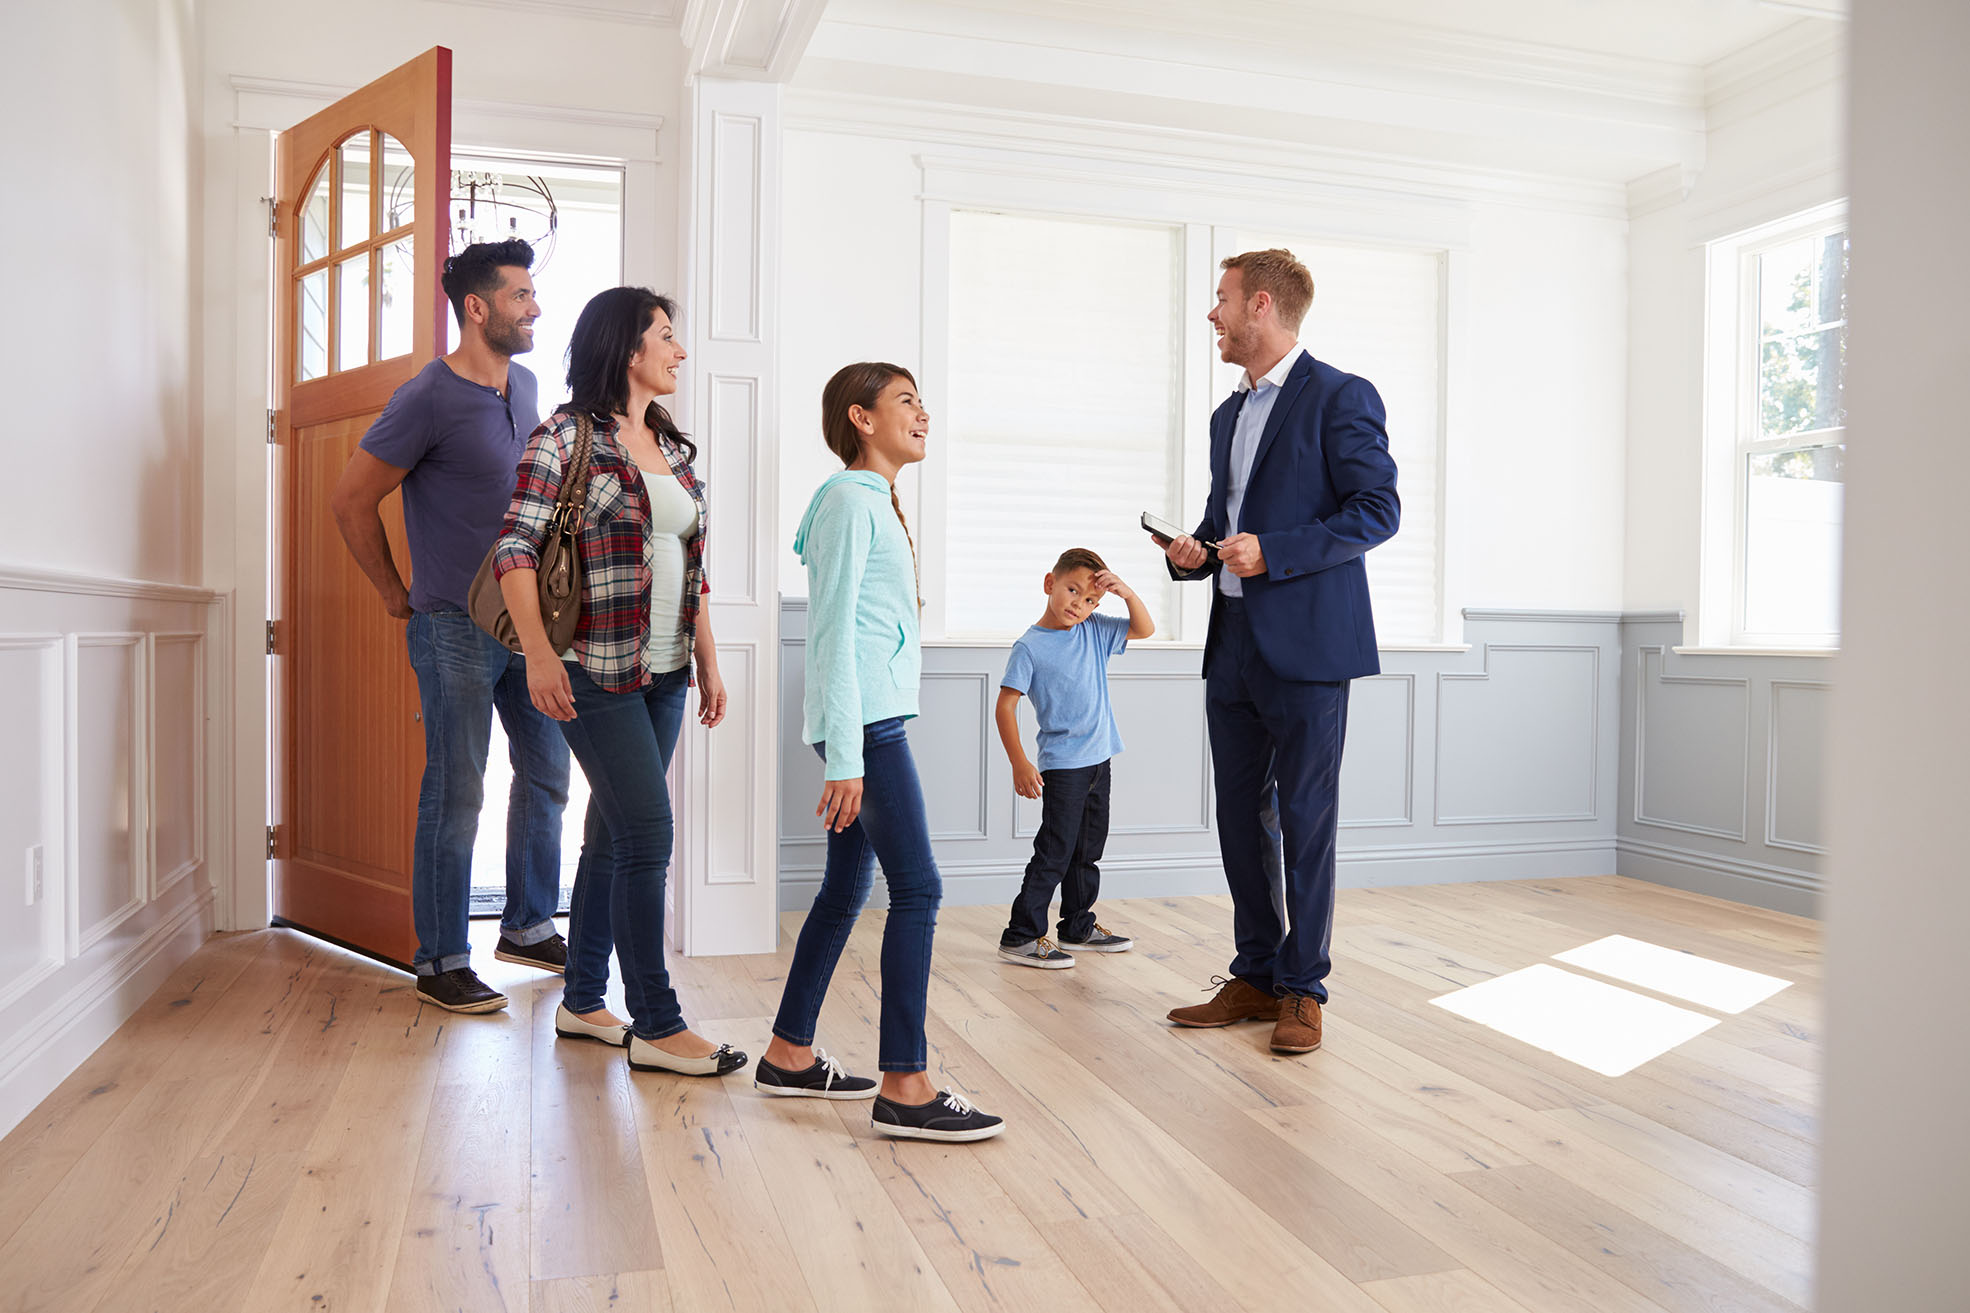 Real Estate Marketing: Tips on How to Gain and Close More Deals